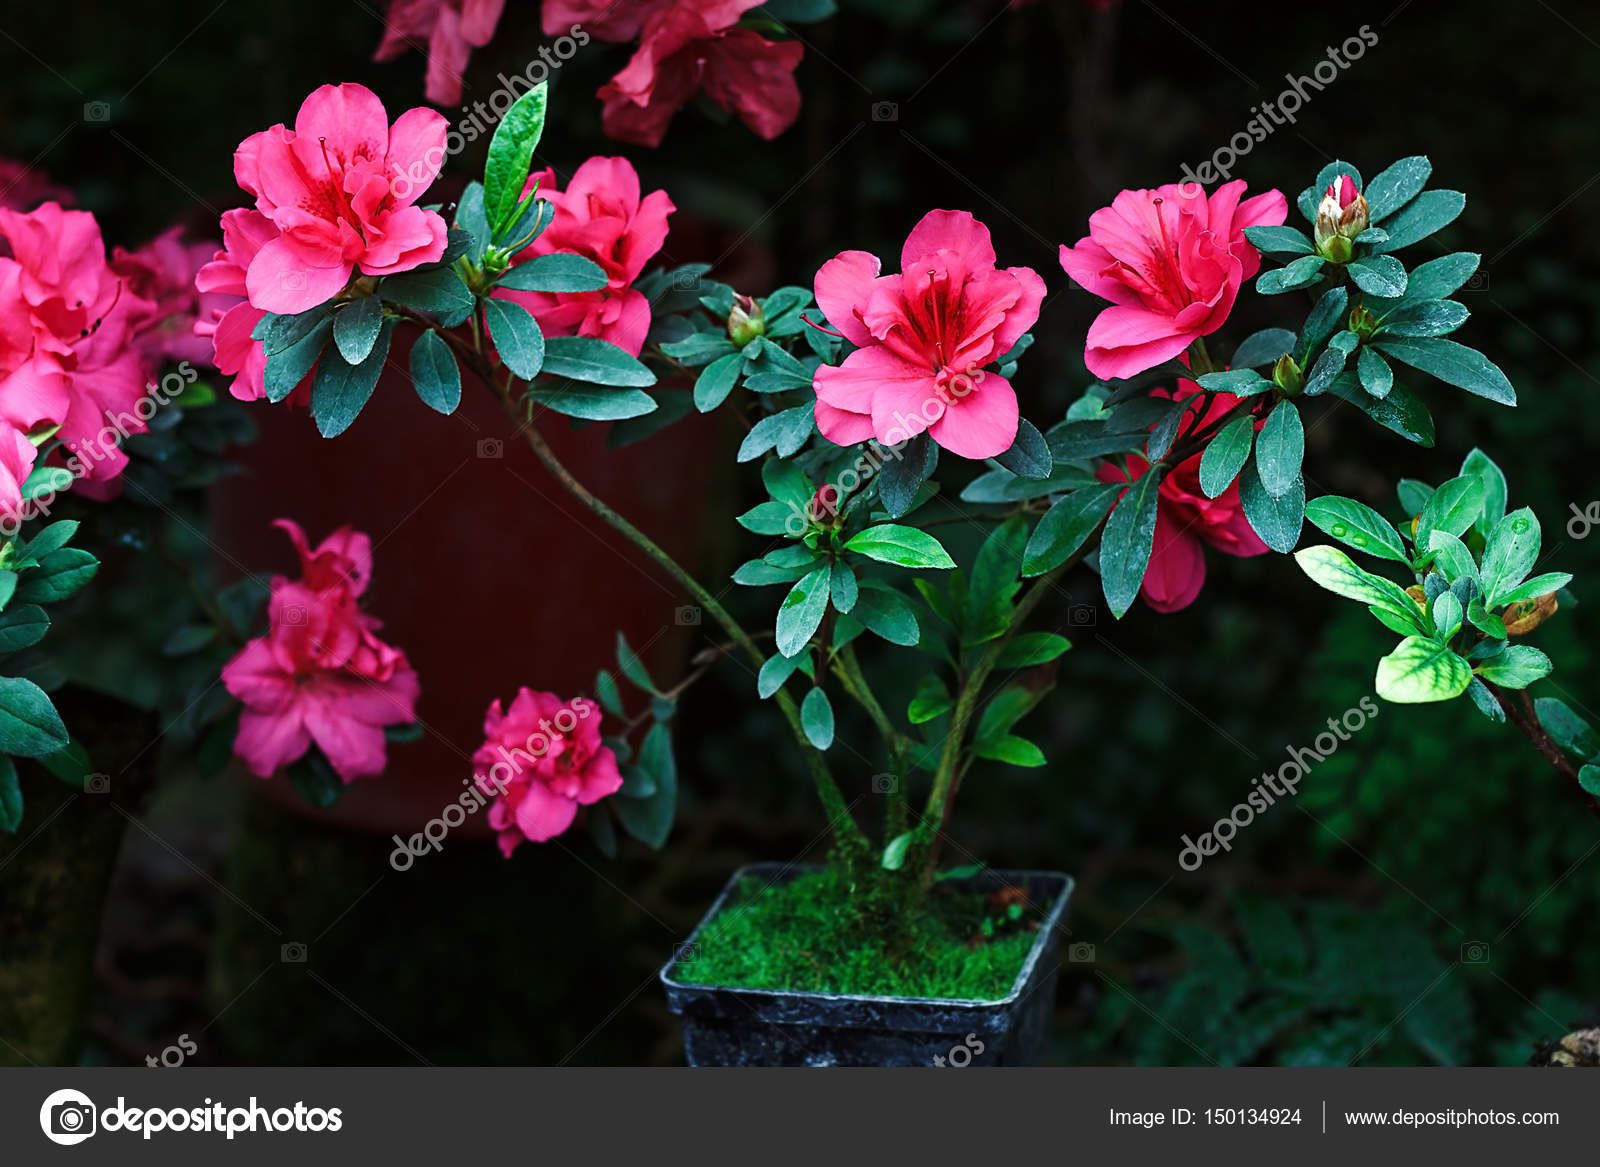 https://st3.depositphotos.com/7043674/15013/i/1600/depositphotos_150134924-stock-photo-beautiful-pink-rhododendron-tree-blossoms.jpg